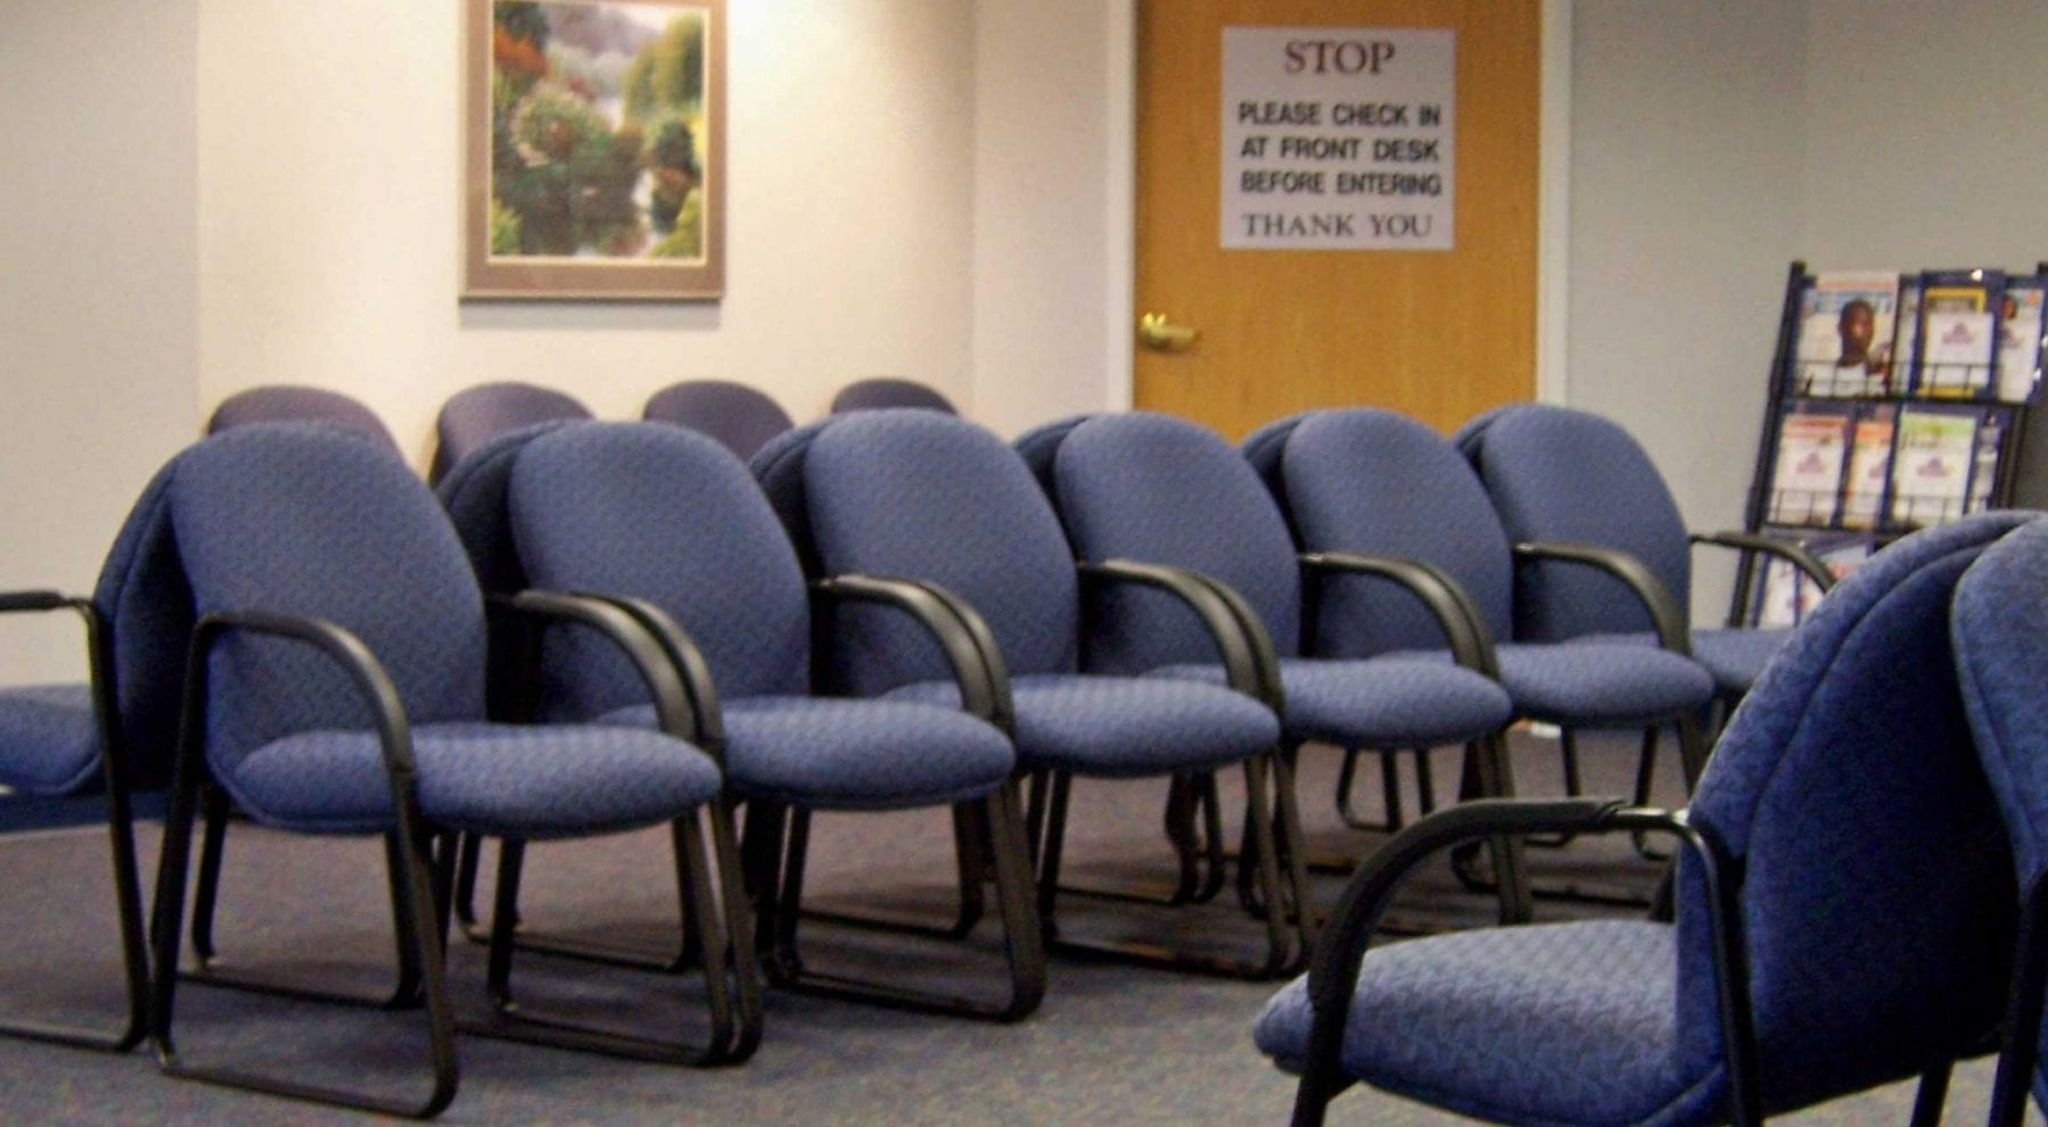 doctor's waiting room chairs